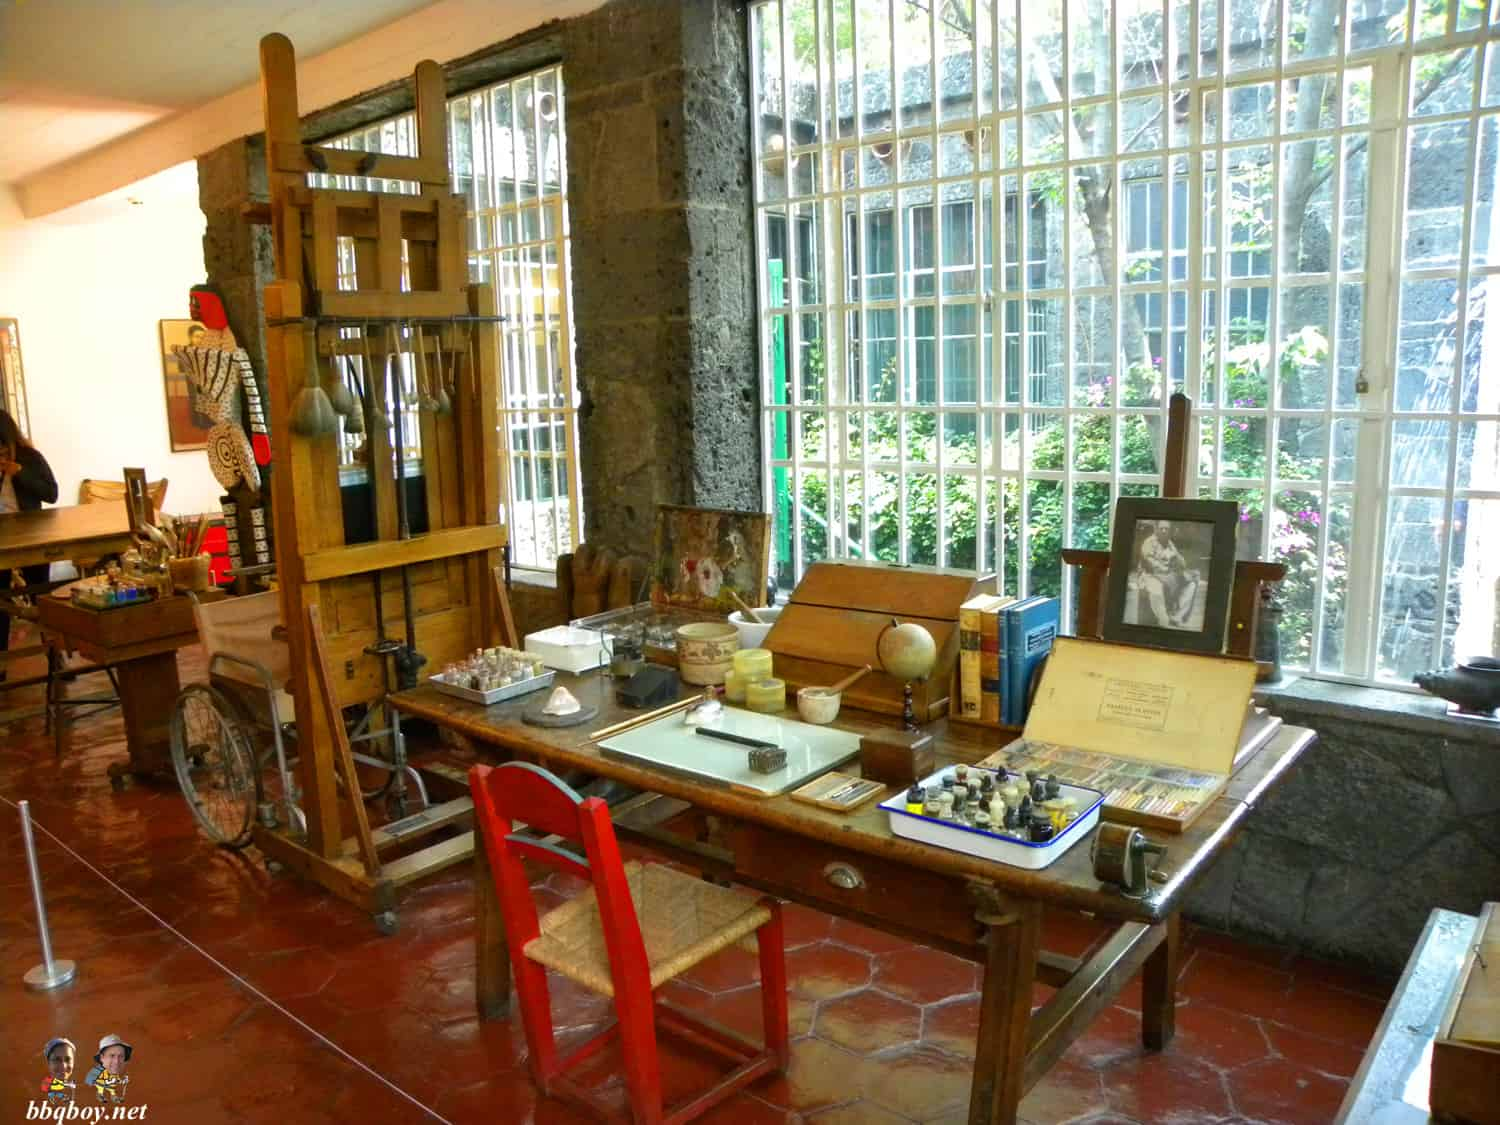 Frida's workshop